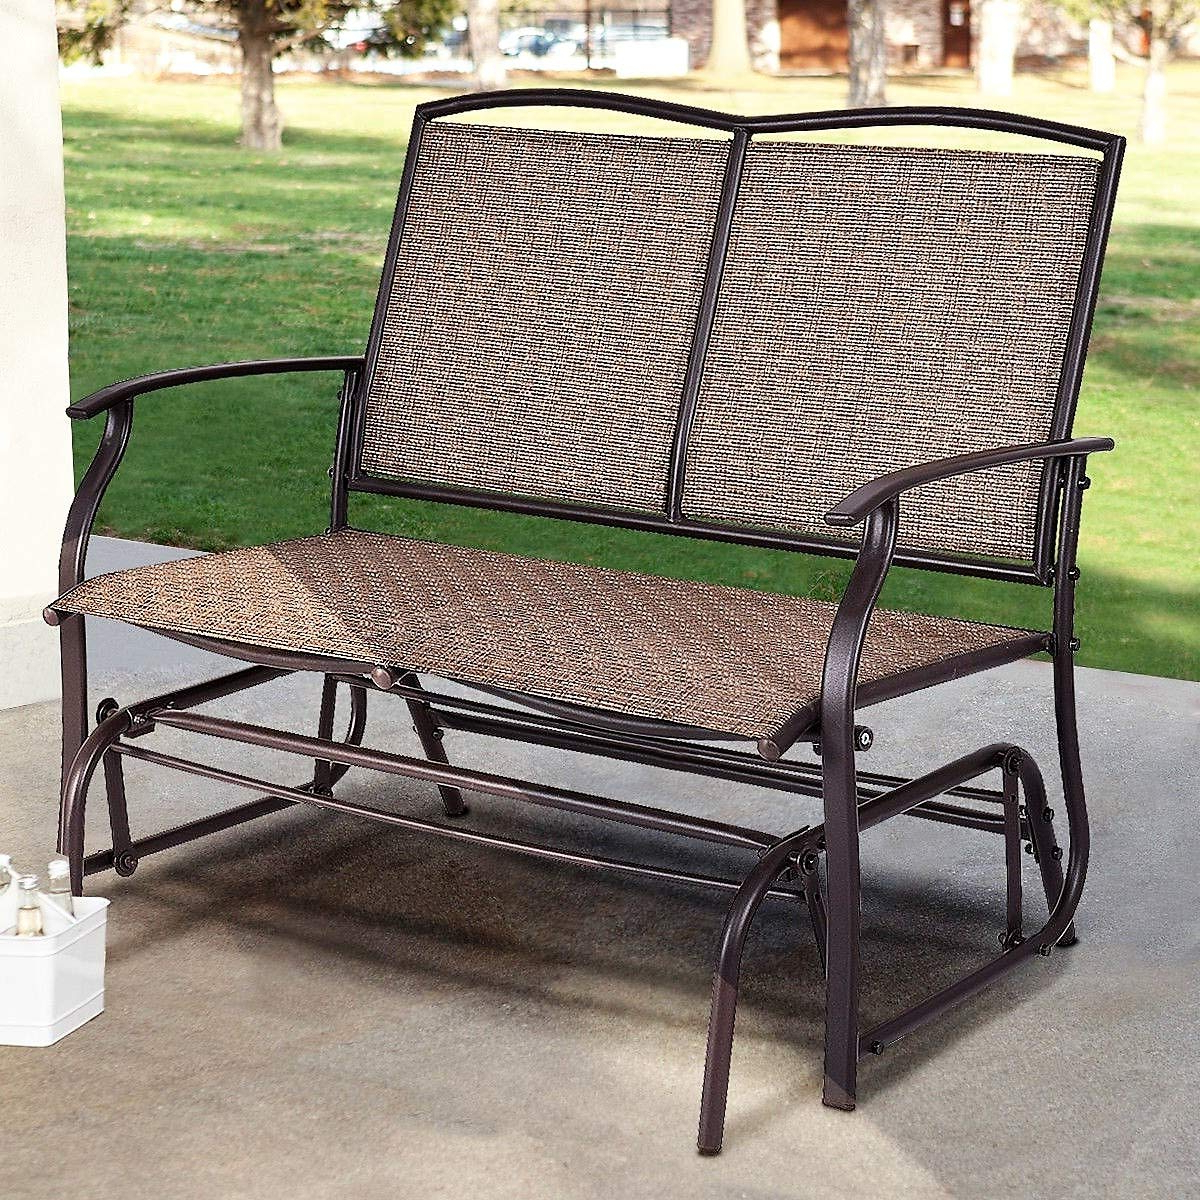 Preferred Rocking Love Seats Glider Swing Benches With Sturdy Frame Regarding Amazon : Lucky Gift – Patio Glider Rocking 2 Person (View 21 of 30)